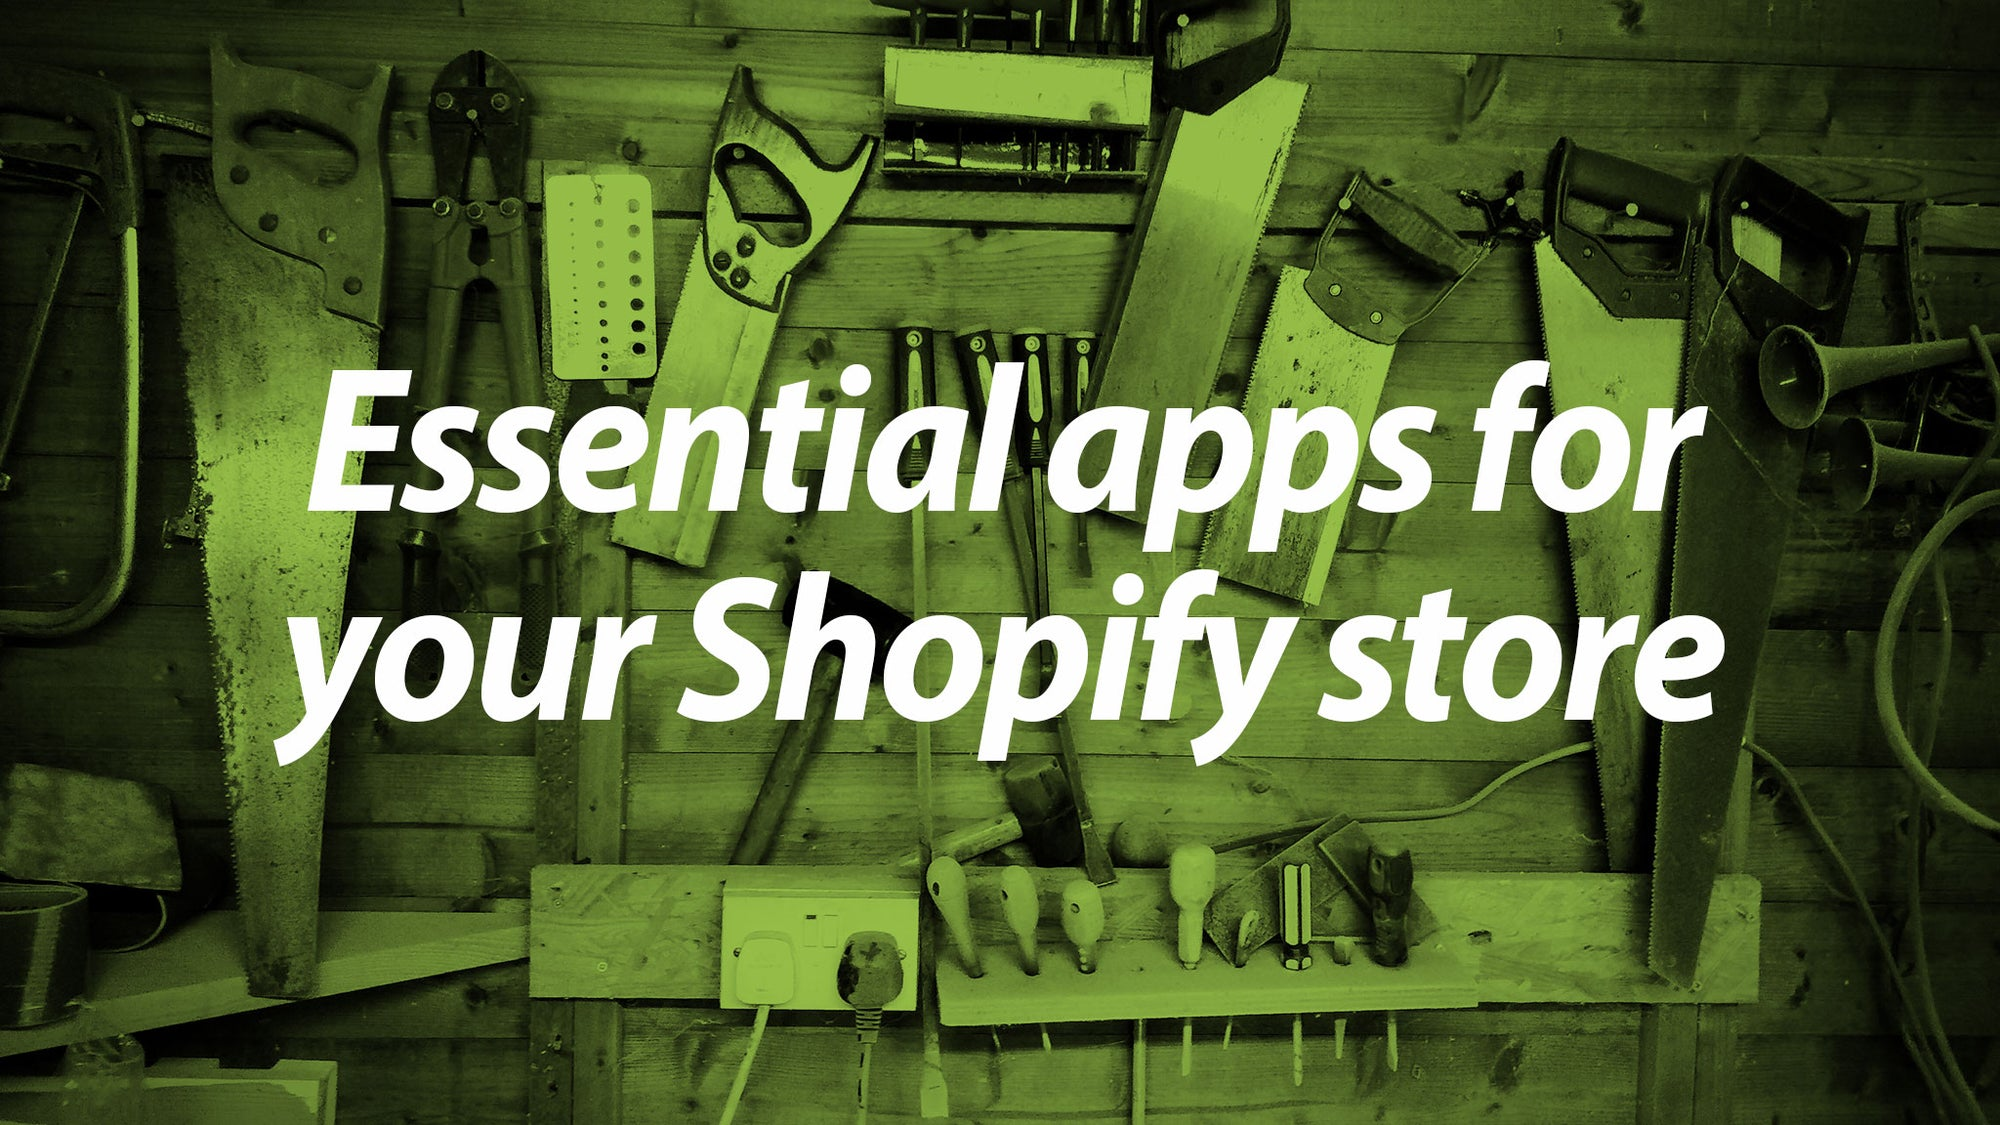 Essential apps for your Shopify store